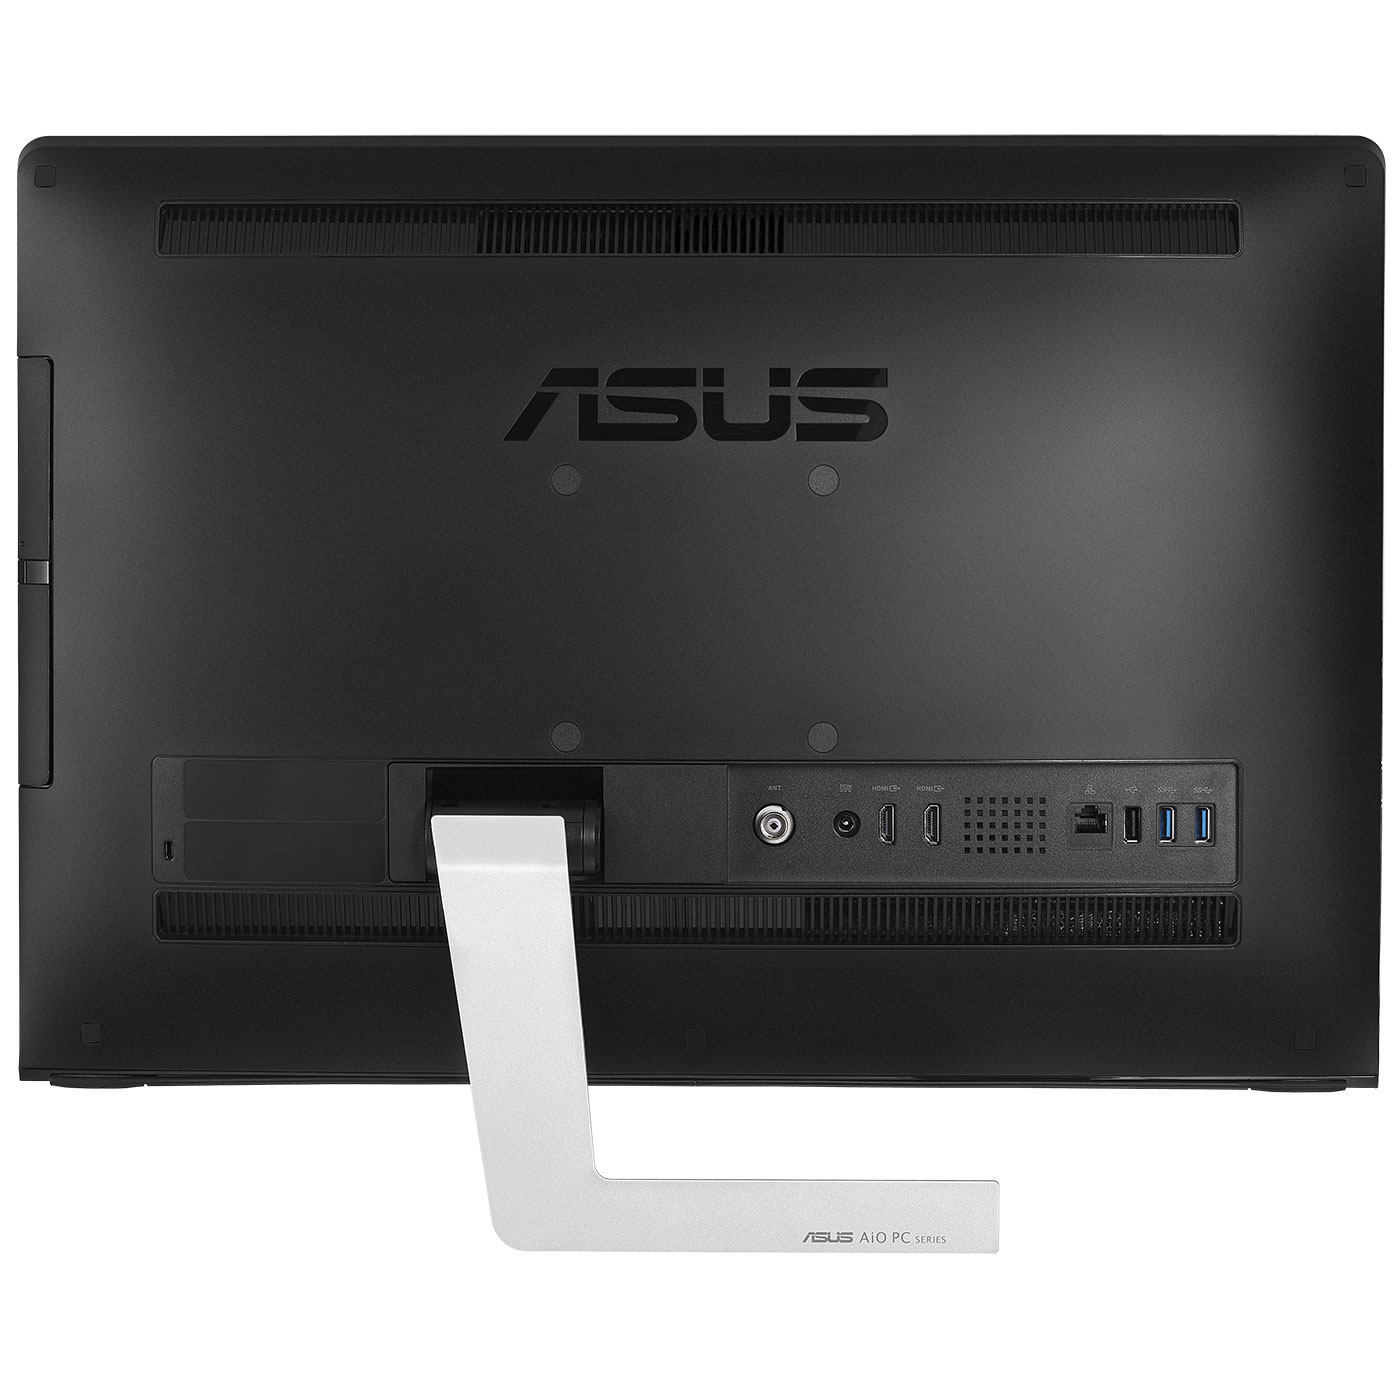 Ordinateur De Bureau Professionnel Asus All In One Pc A6410 Bc046t Pc De Bureau Asus Sur